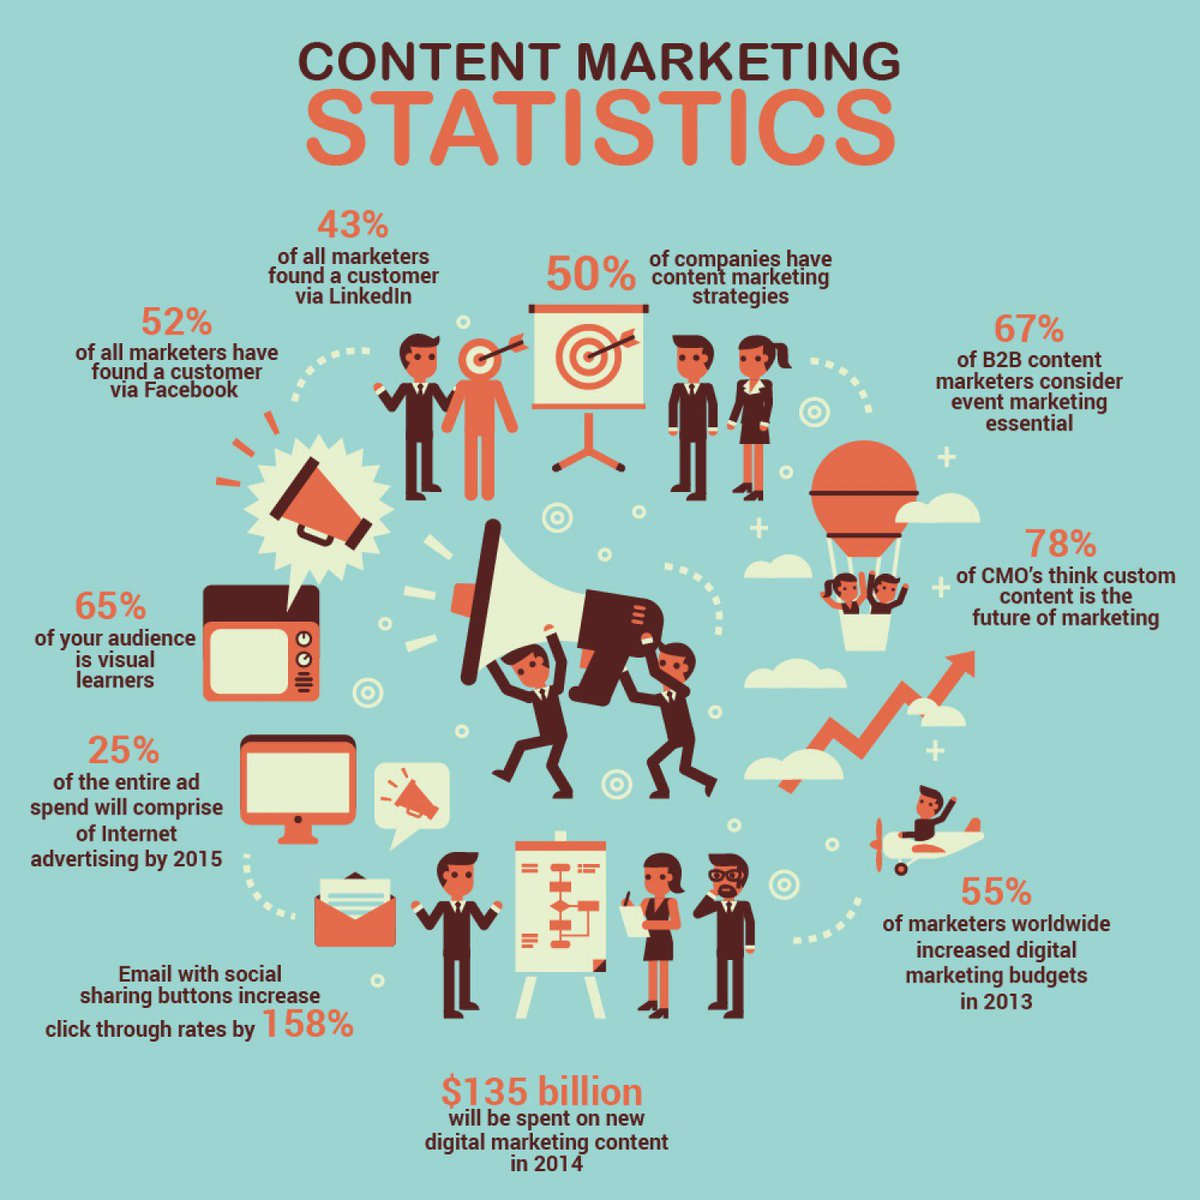 Sushant Shukla On Twitter Digital Marketing Plan Content Statistics Step Creation Strategy Infographic OnlineMarketing EmailMarketing